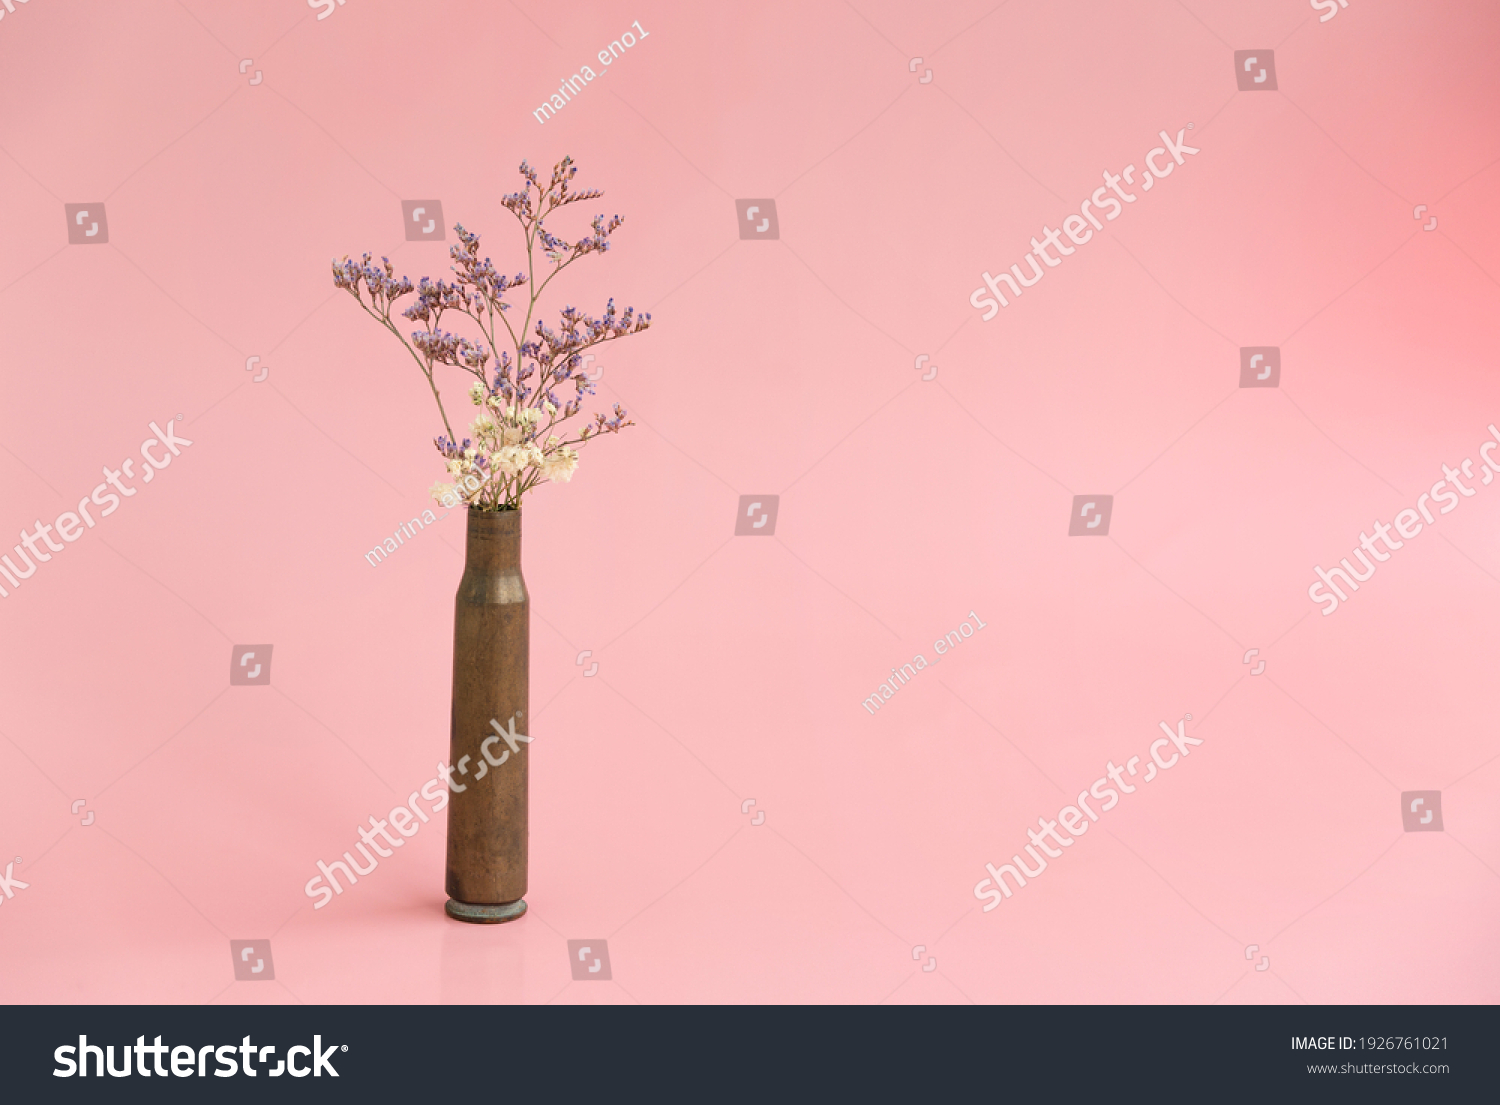 Dried flowers in an empty case from under a firearm on a pink background #1926761021